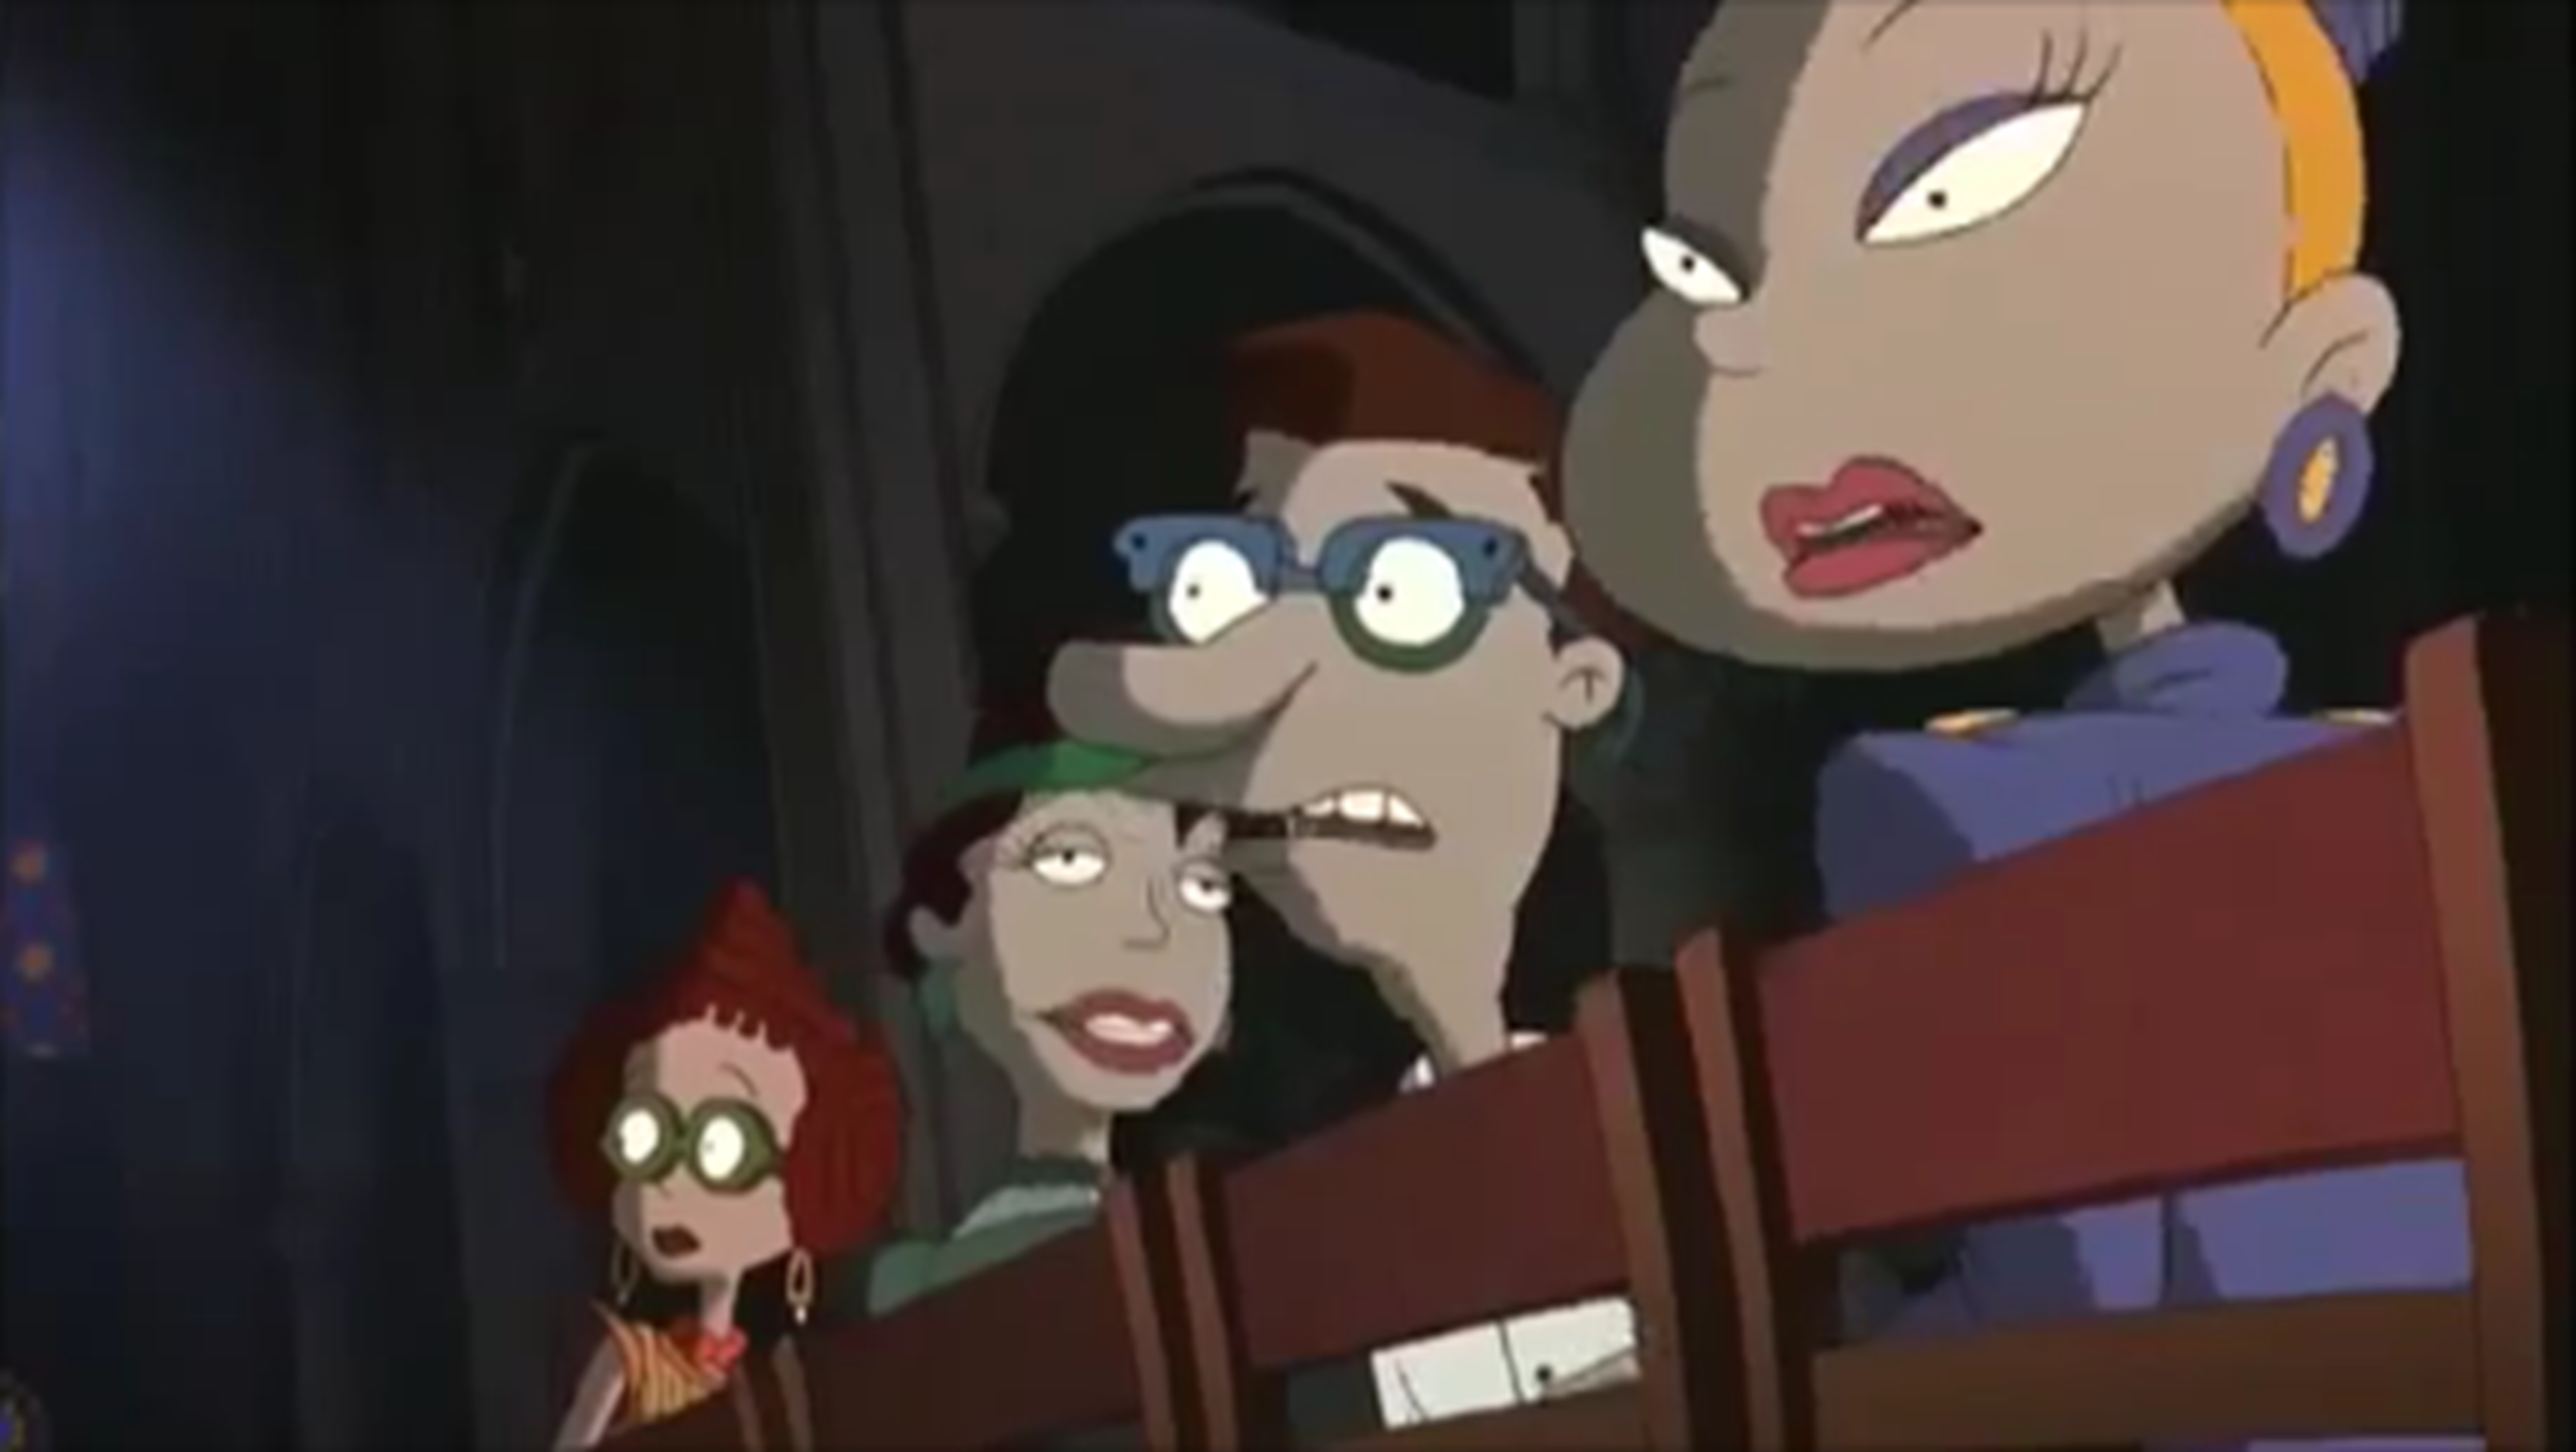 Charlotte Pickles/Gallery/Rugrats in Paris: The Movie